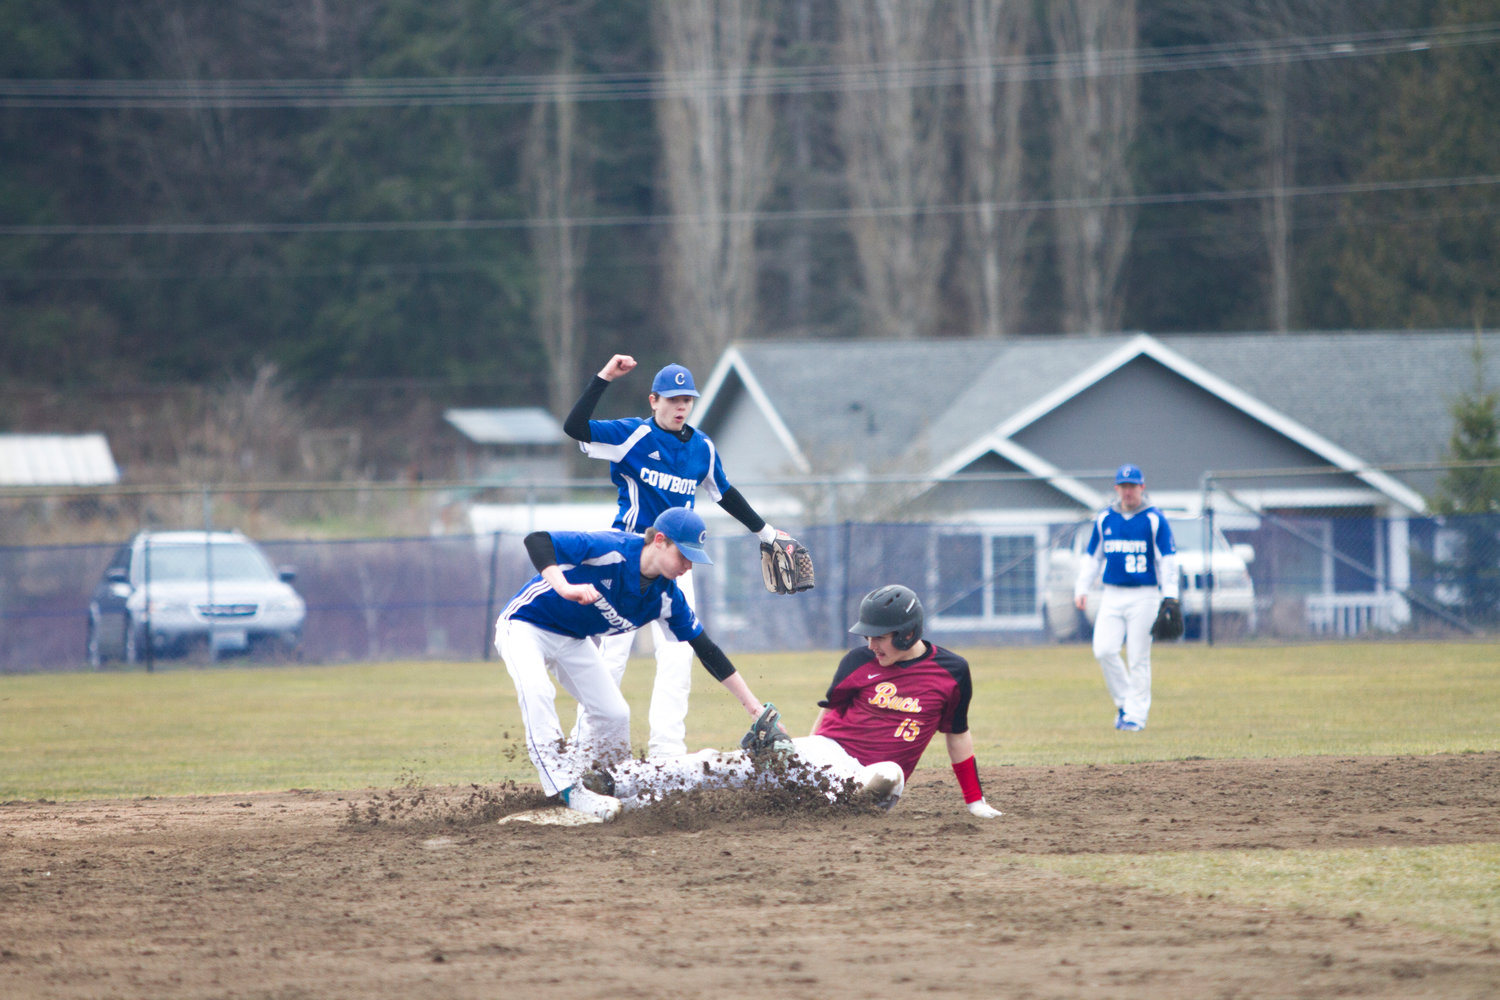 Chimacum senior Issac Purser tags Kingston's Tim Foss out as Foss slides into second base during the March 11 game at Chimacum. The Cowboys wont their season opener against Kingston 9-3.